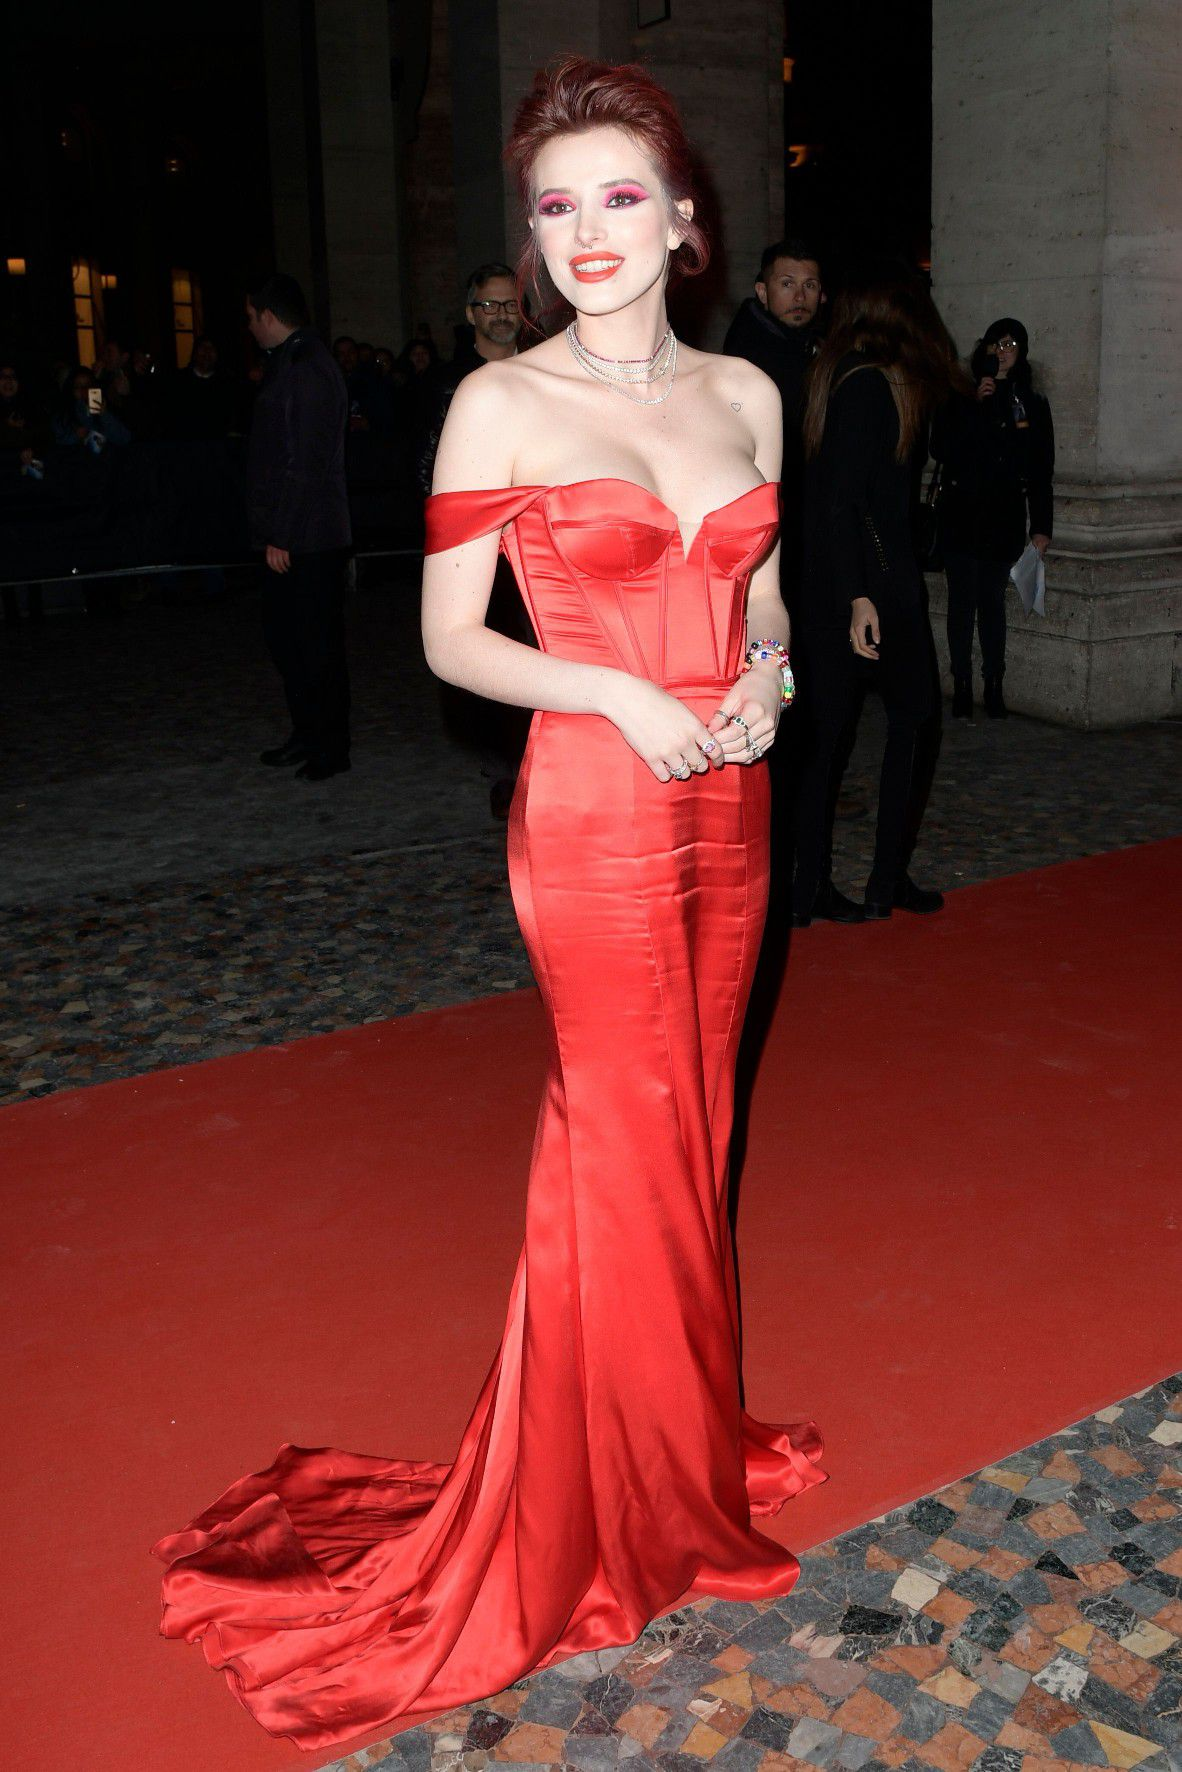 bella-thorne-deep-cleavage-at-midnight-run-premiere-in-rome-6465